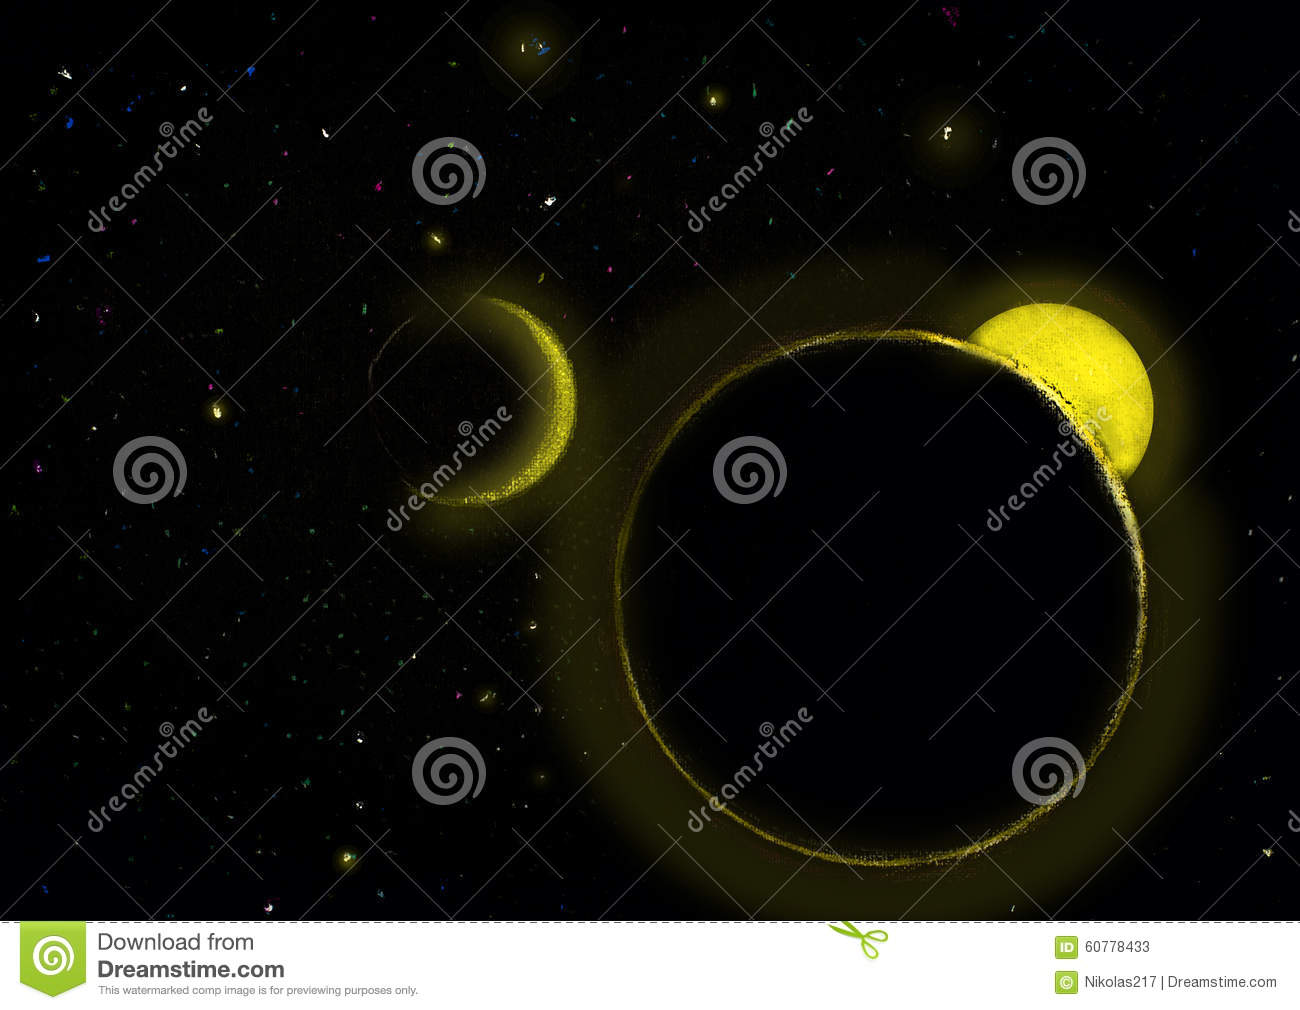 starry sky with planets - photo #10